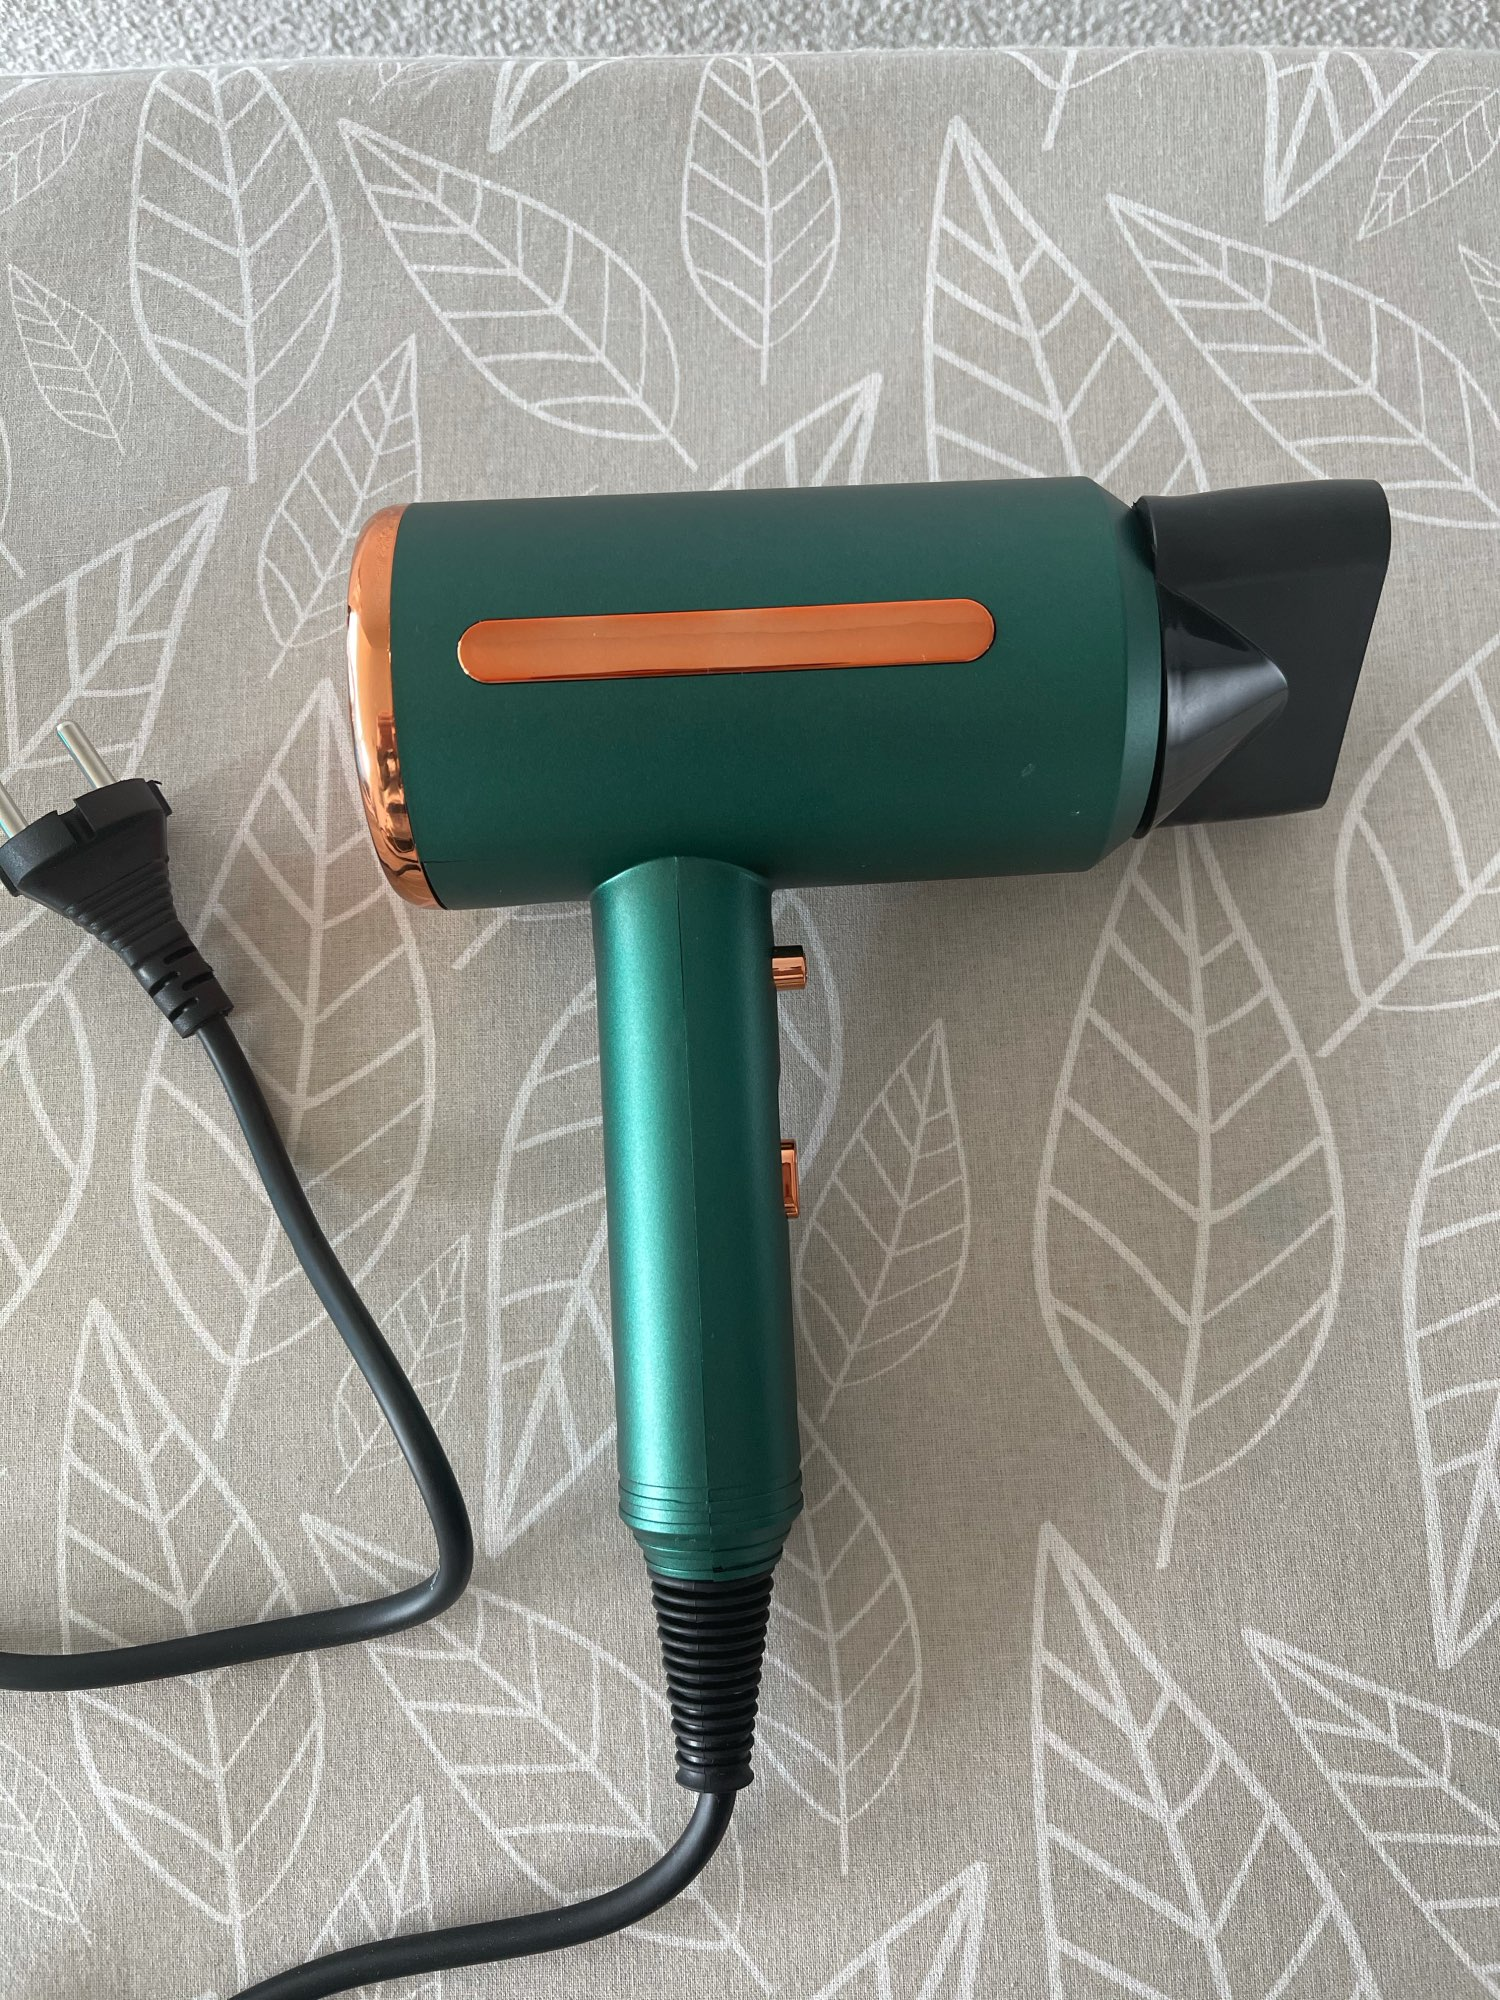 LISM 2000W Professional Electric Hair Dryer photo review